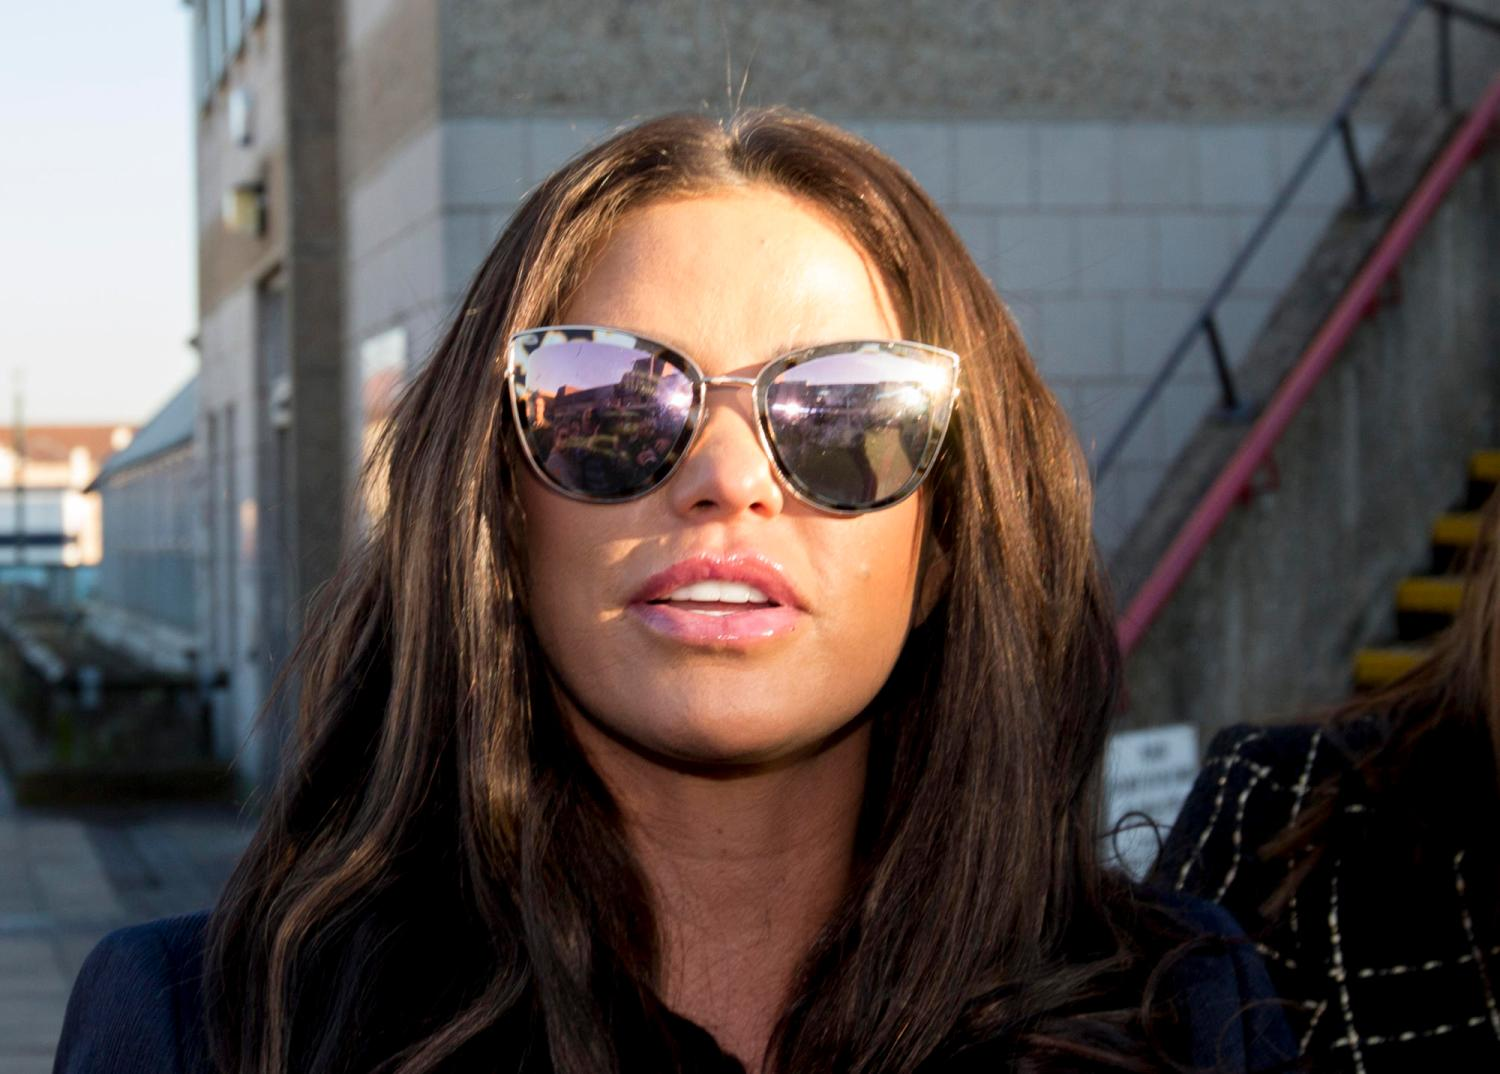 Katie Price's Fiancé Breaks Silence Following Alleged Attack Which Left Her Hospitalized